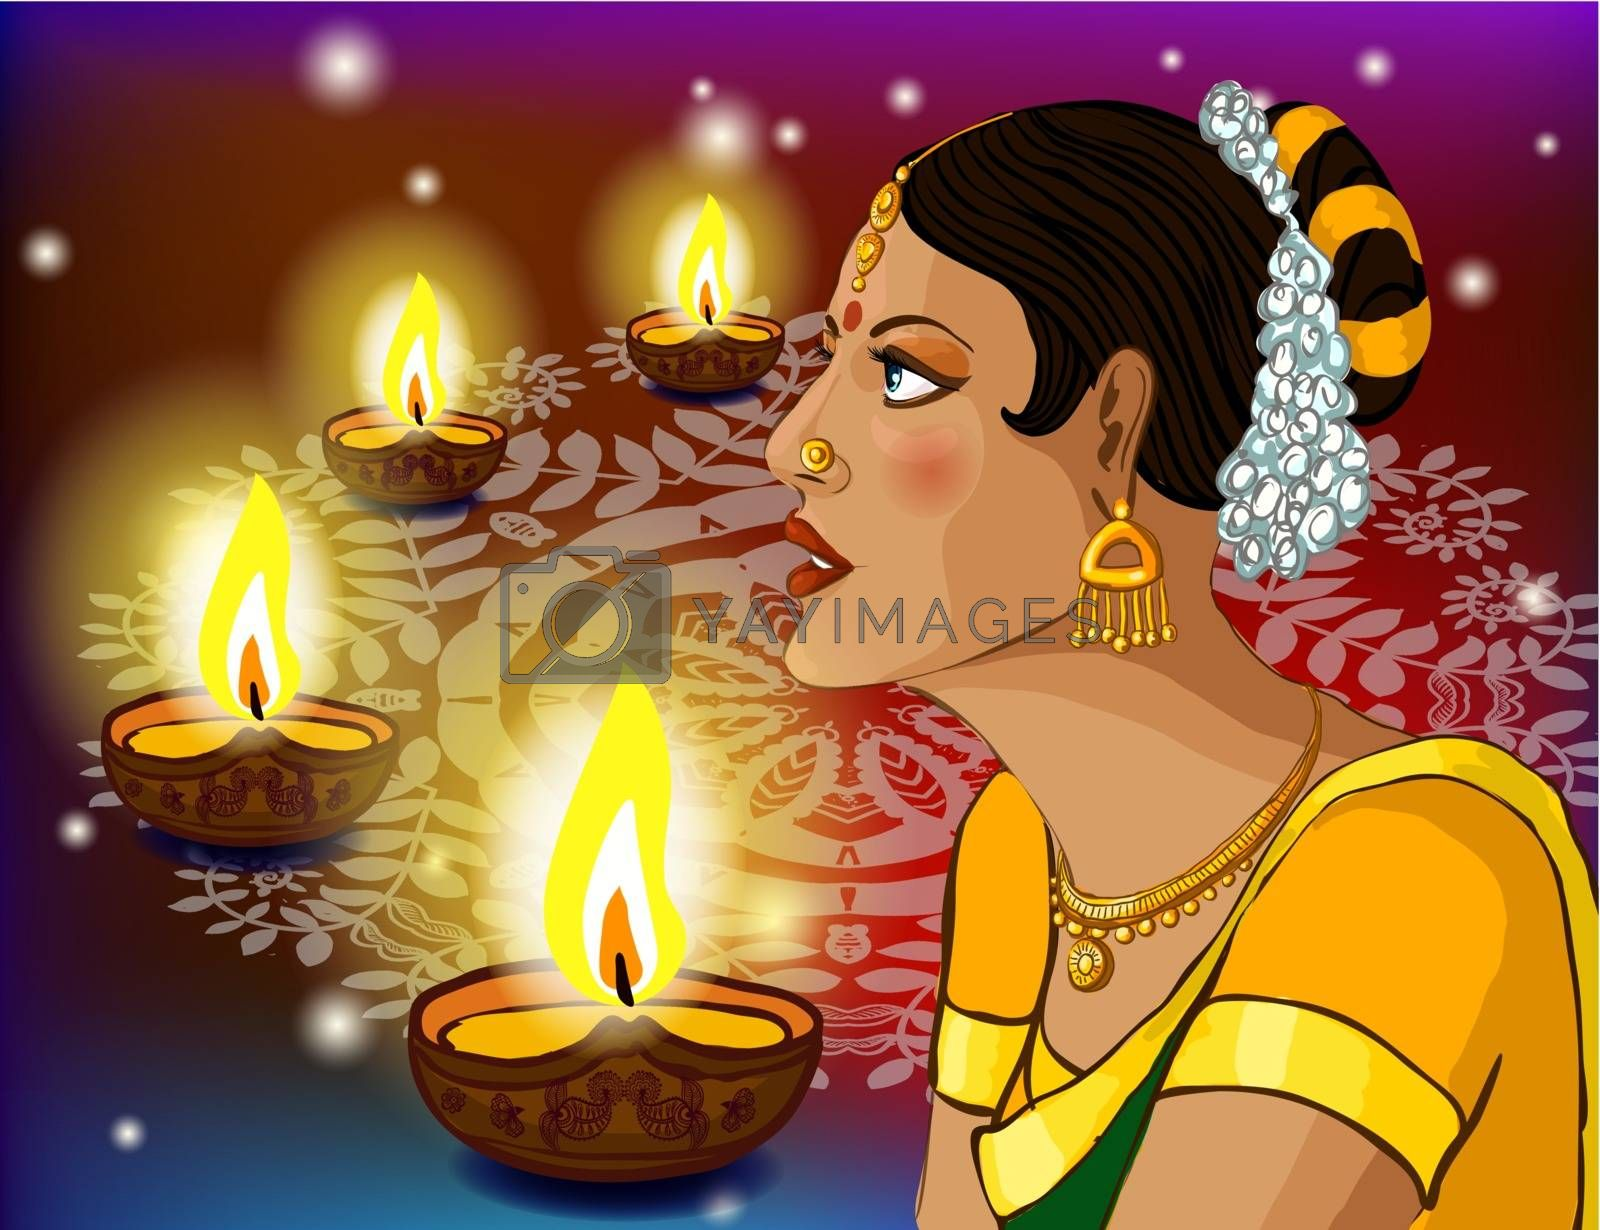 Vector portrait of a beautiful Indian woman in sari with festive diwali lights background